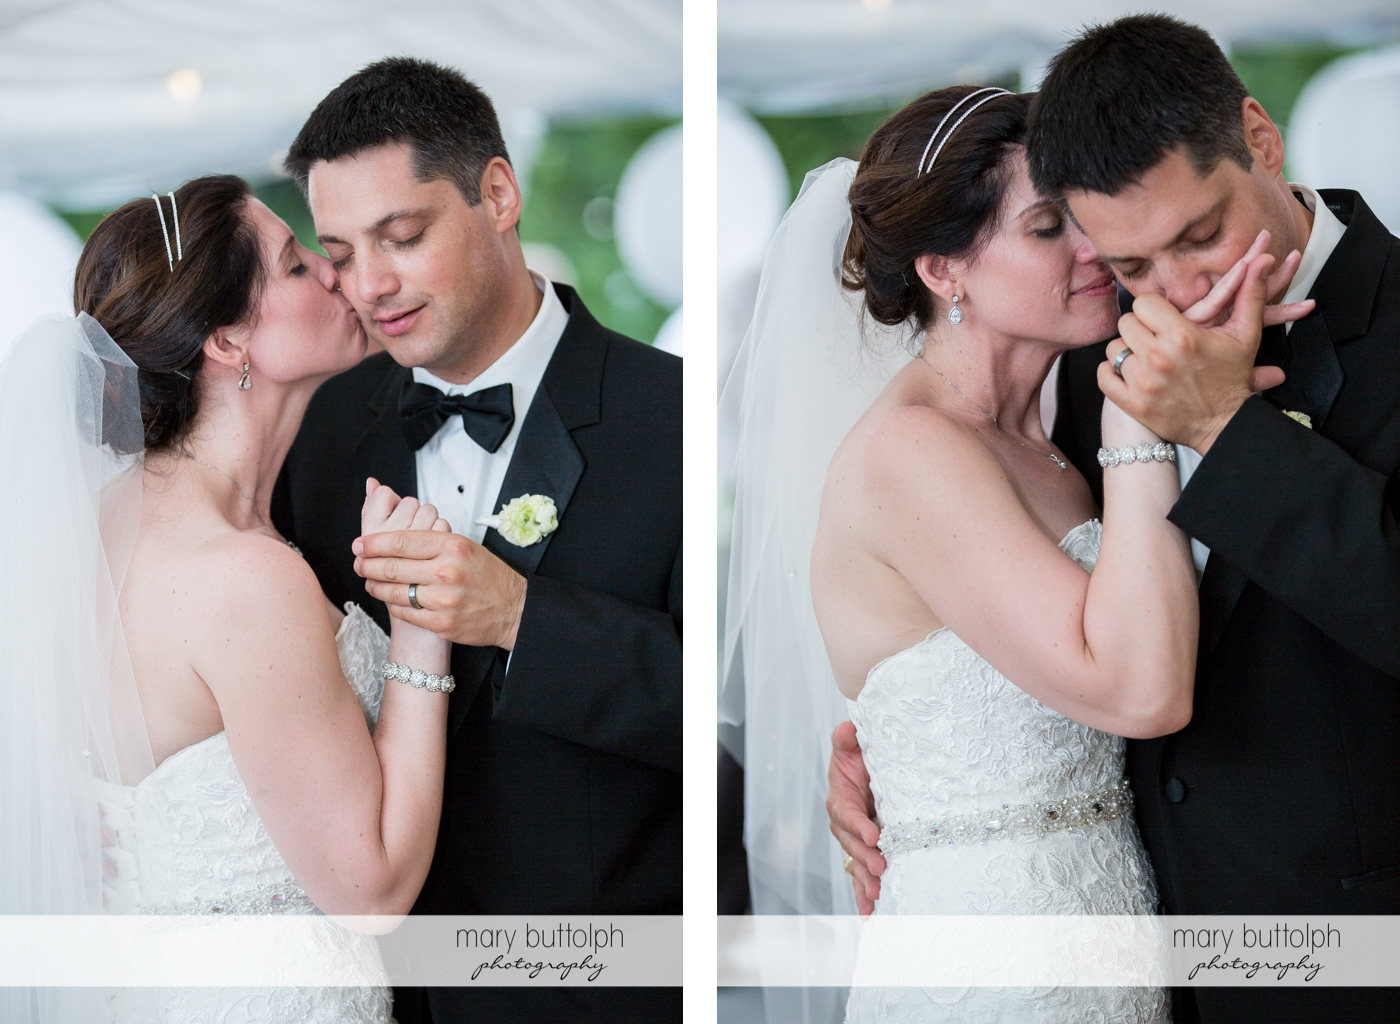 Couple share a romantic moment at the Inns of Aurora Wedding